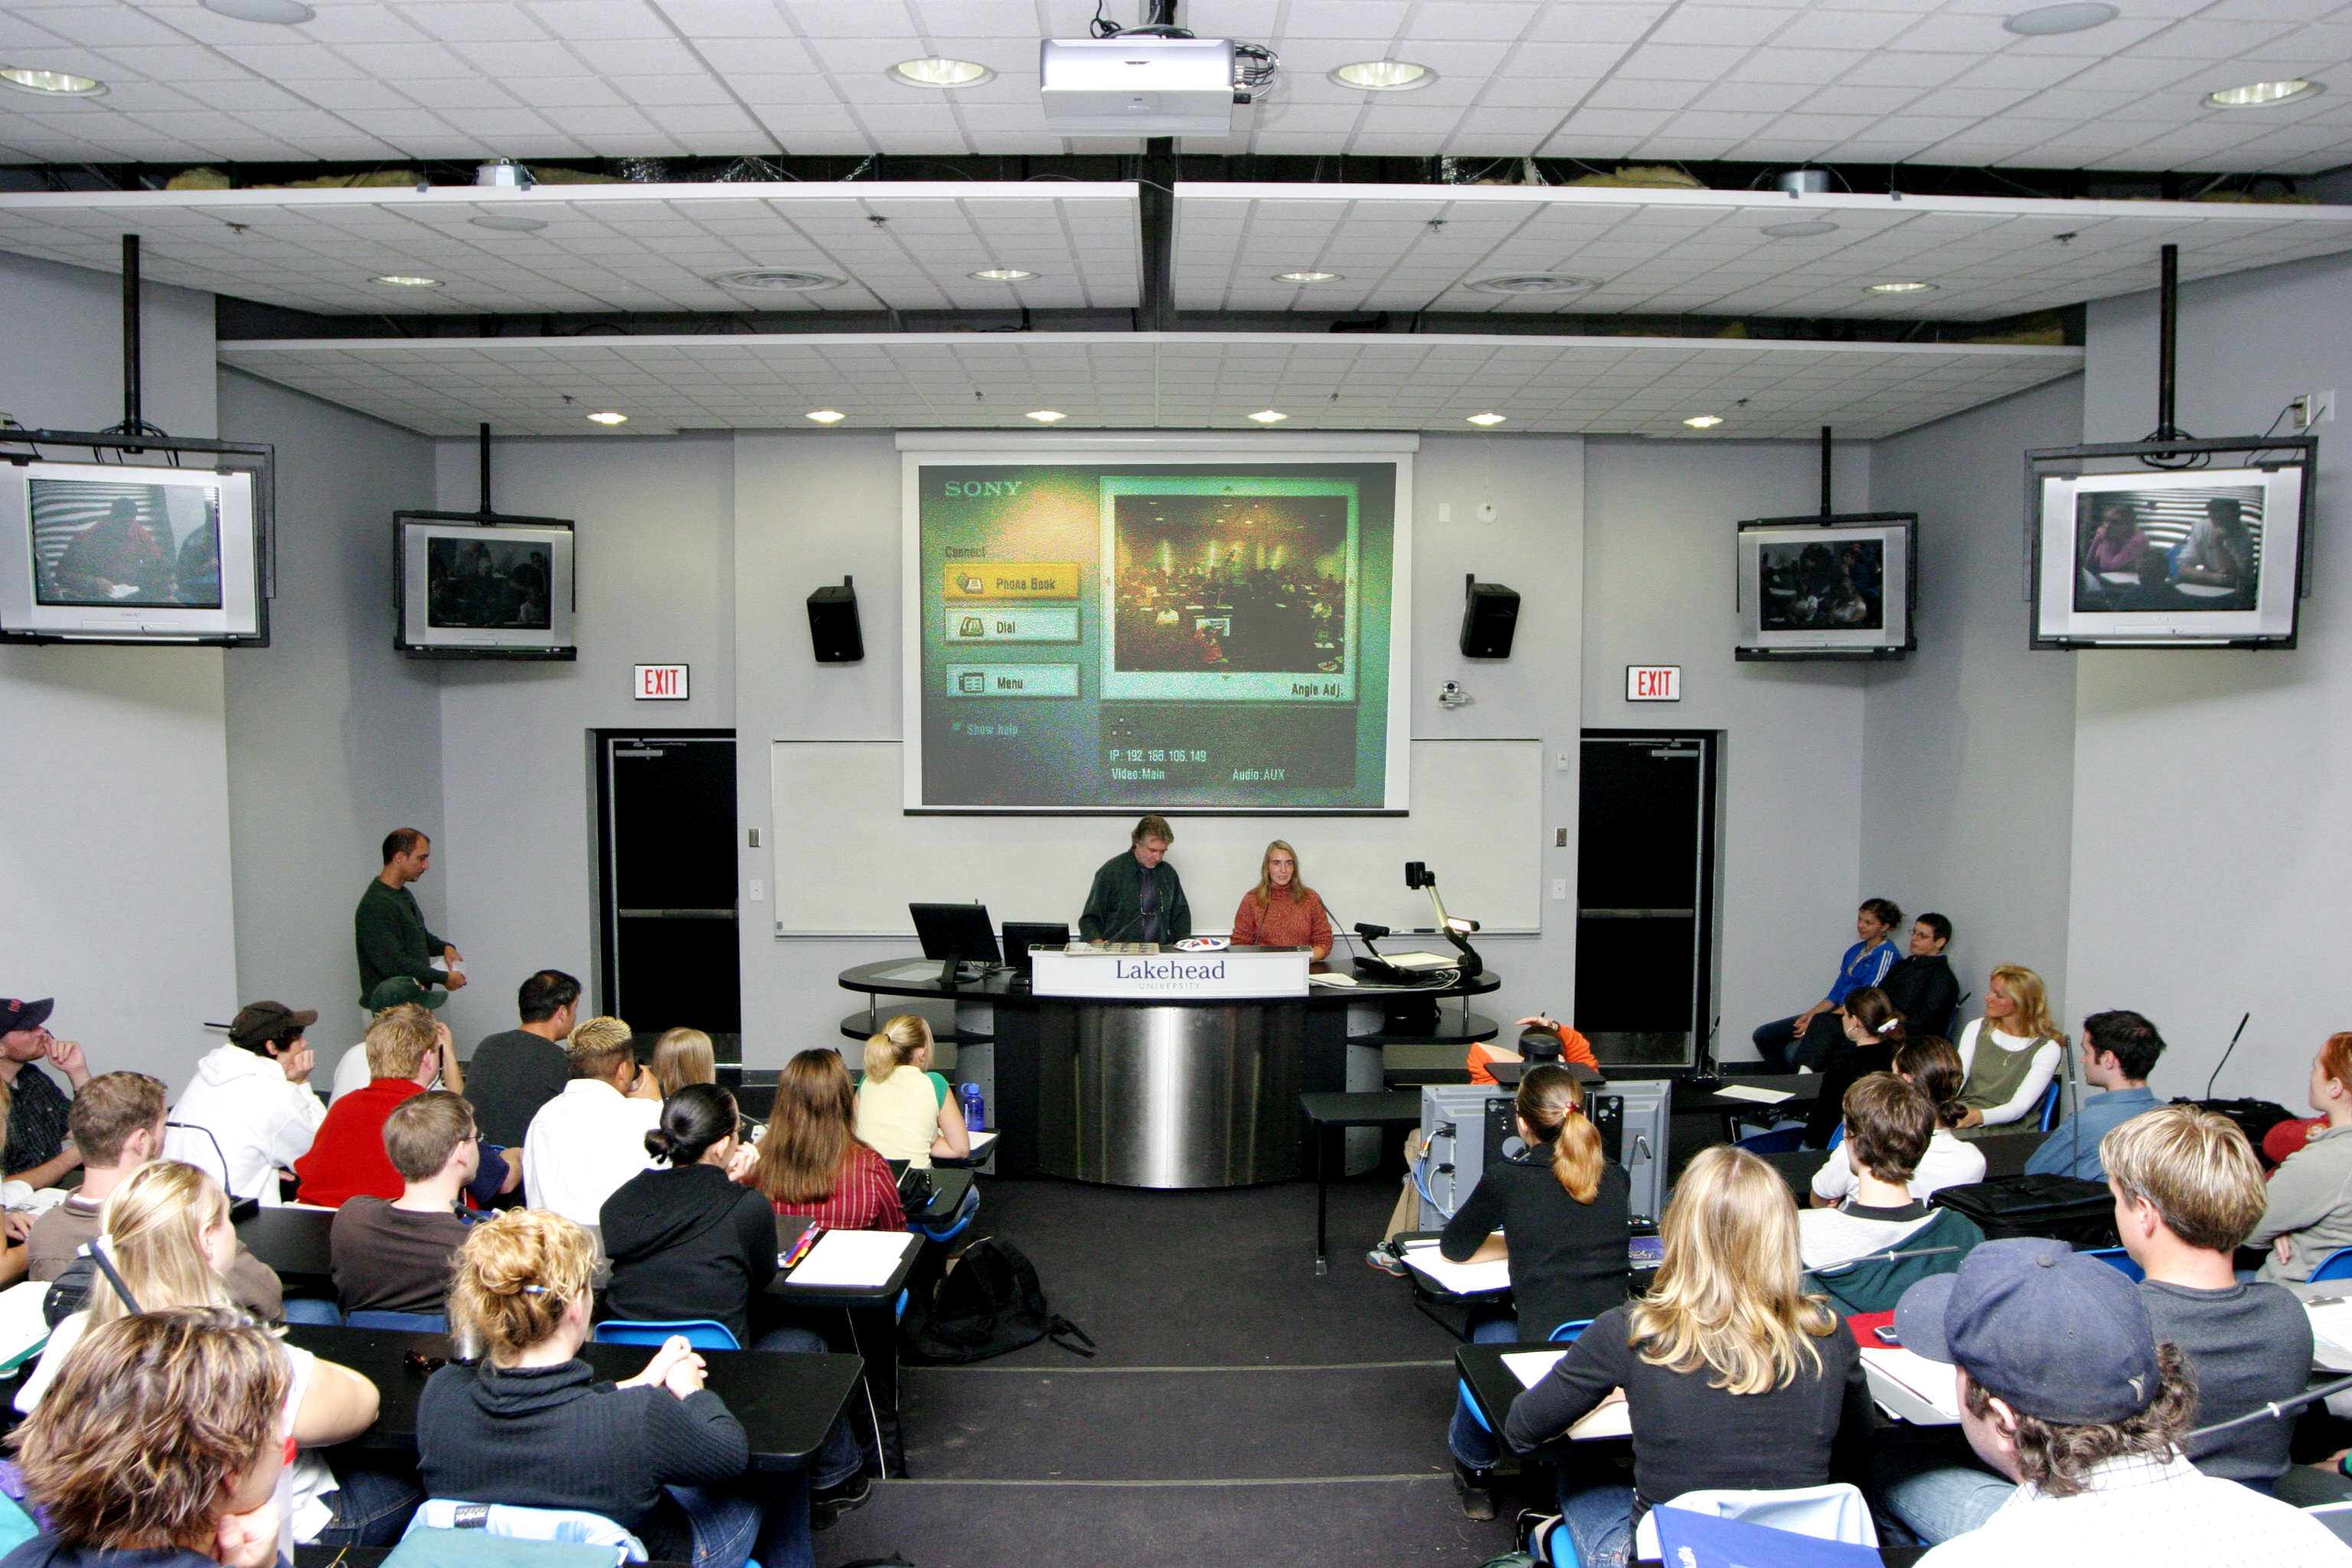 Multimedia classroom with class in session displaying use of multimedia equipment